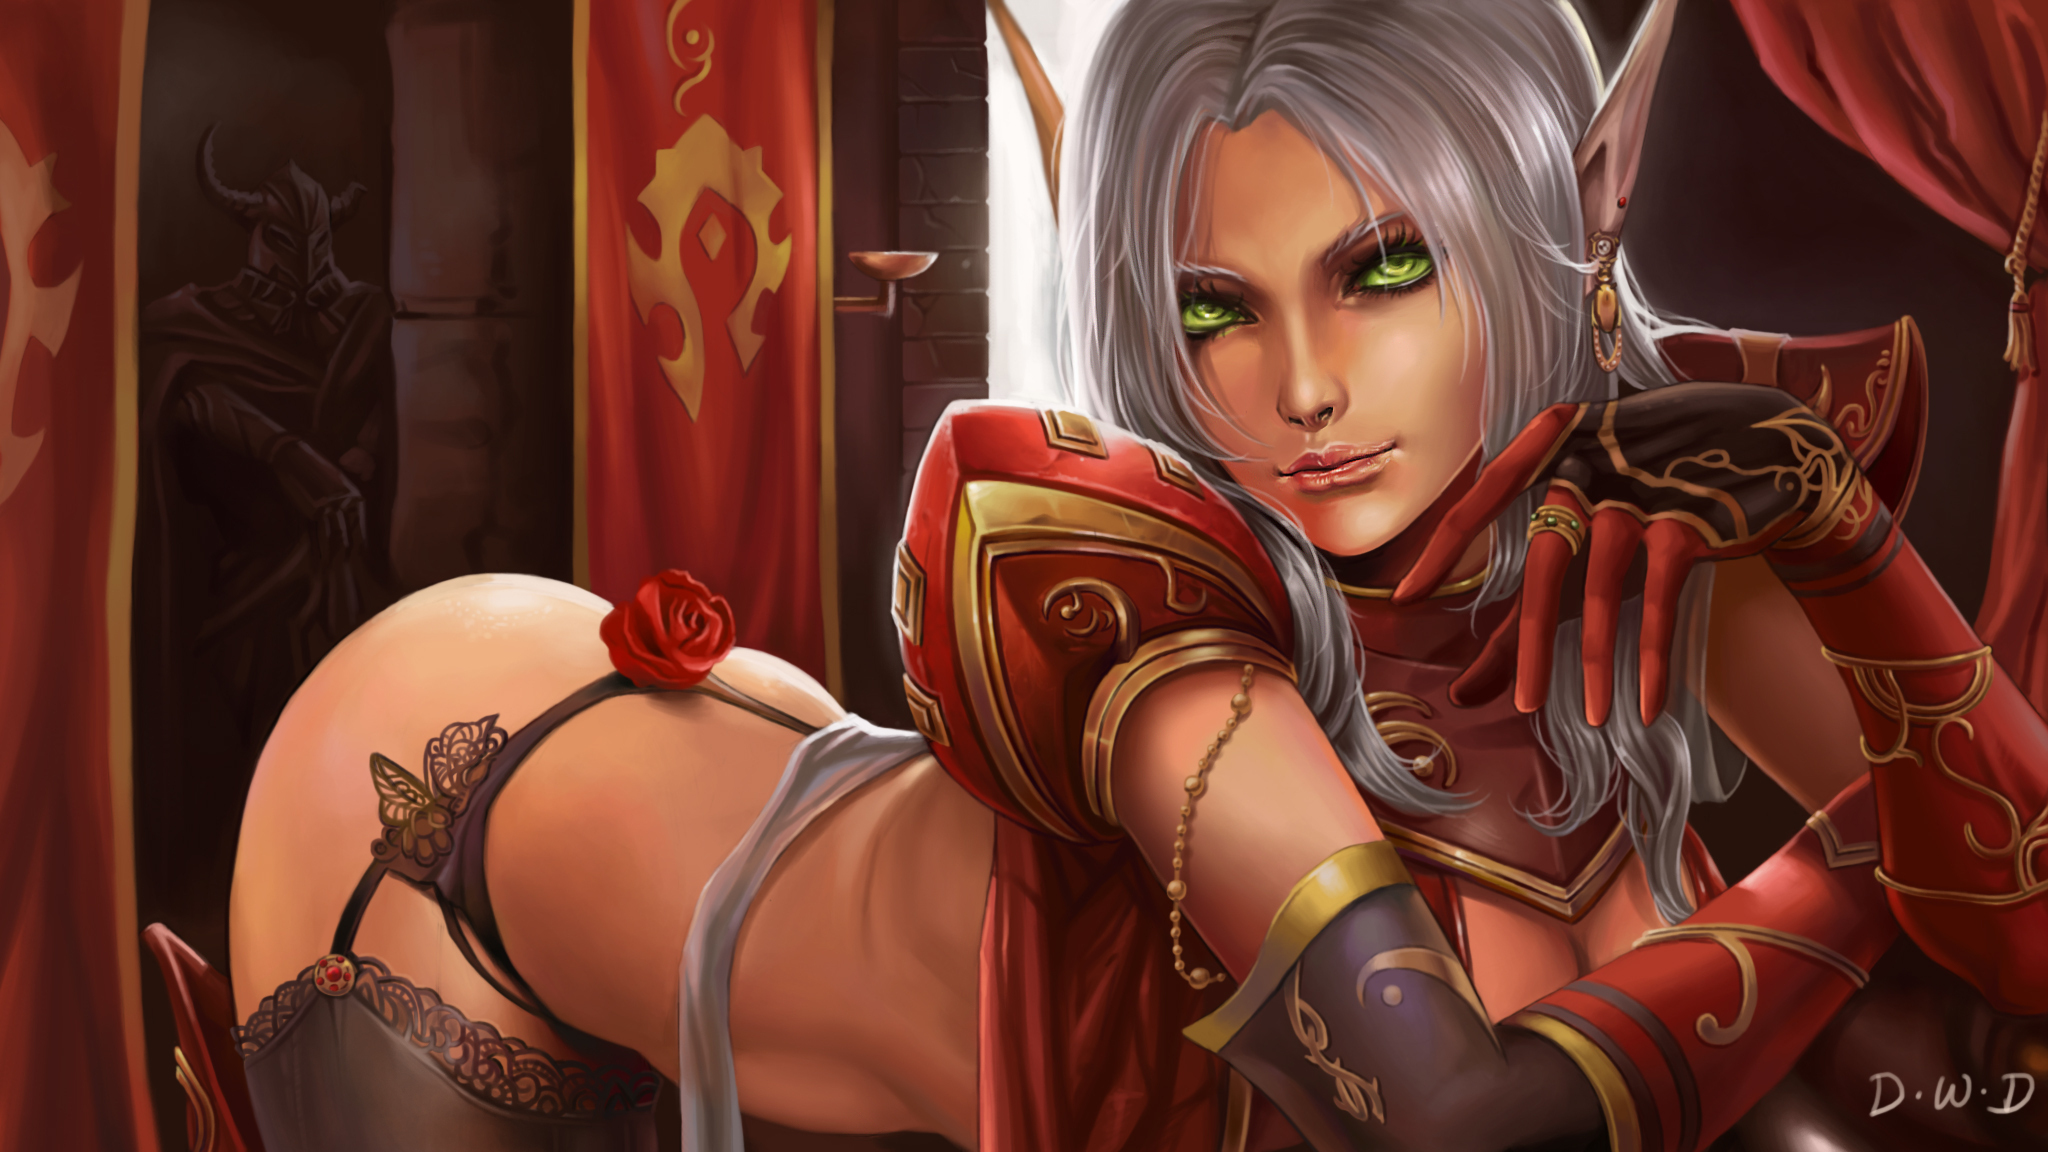 World of warcraft hentai wallpaper fucks pictures